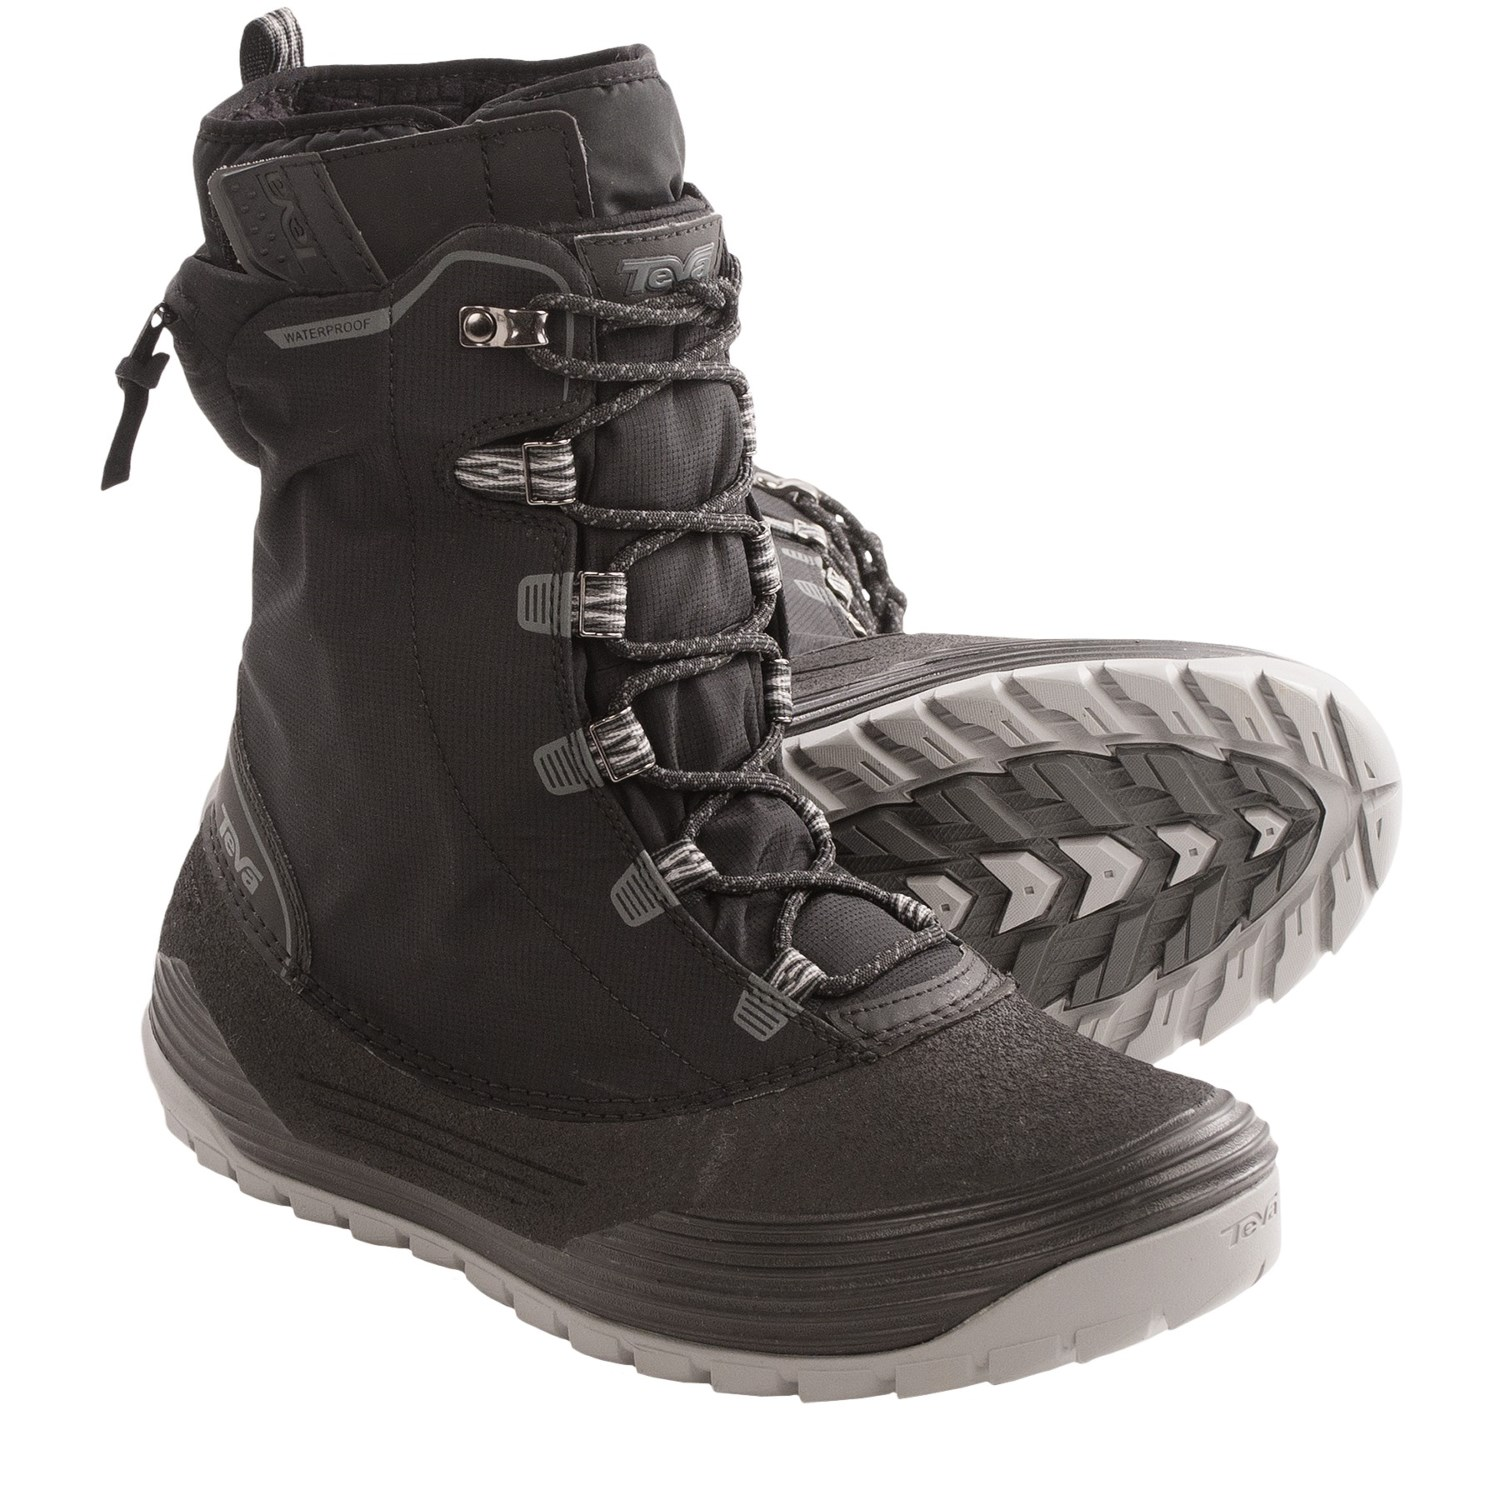 Mens Black Snow Boots | Santa Barbara Institute for Consciousness ...